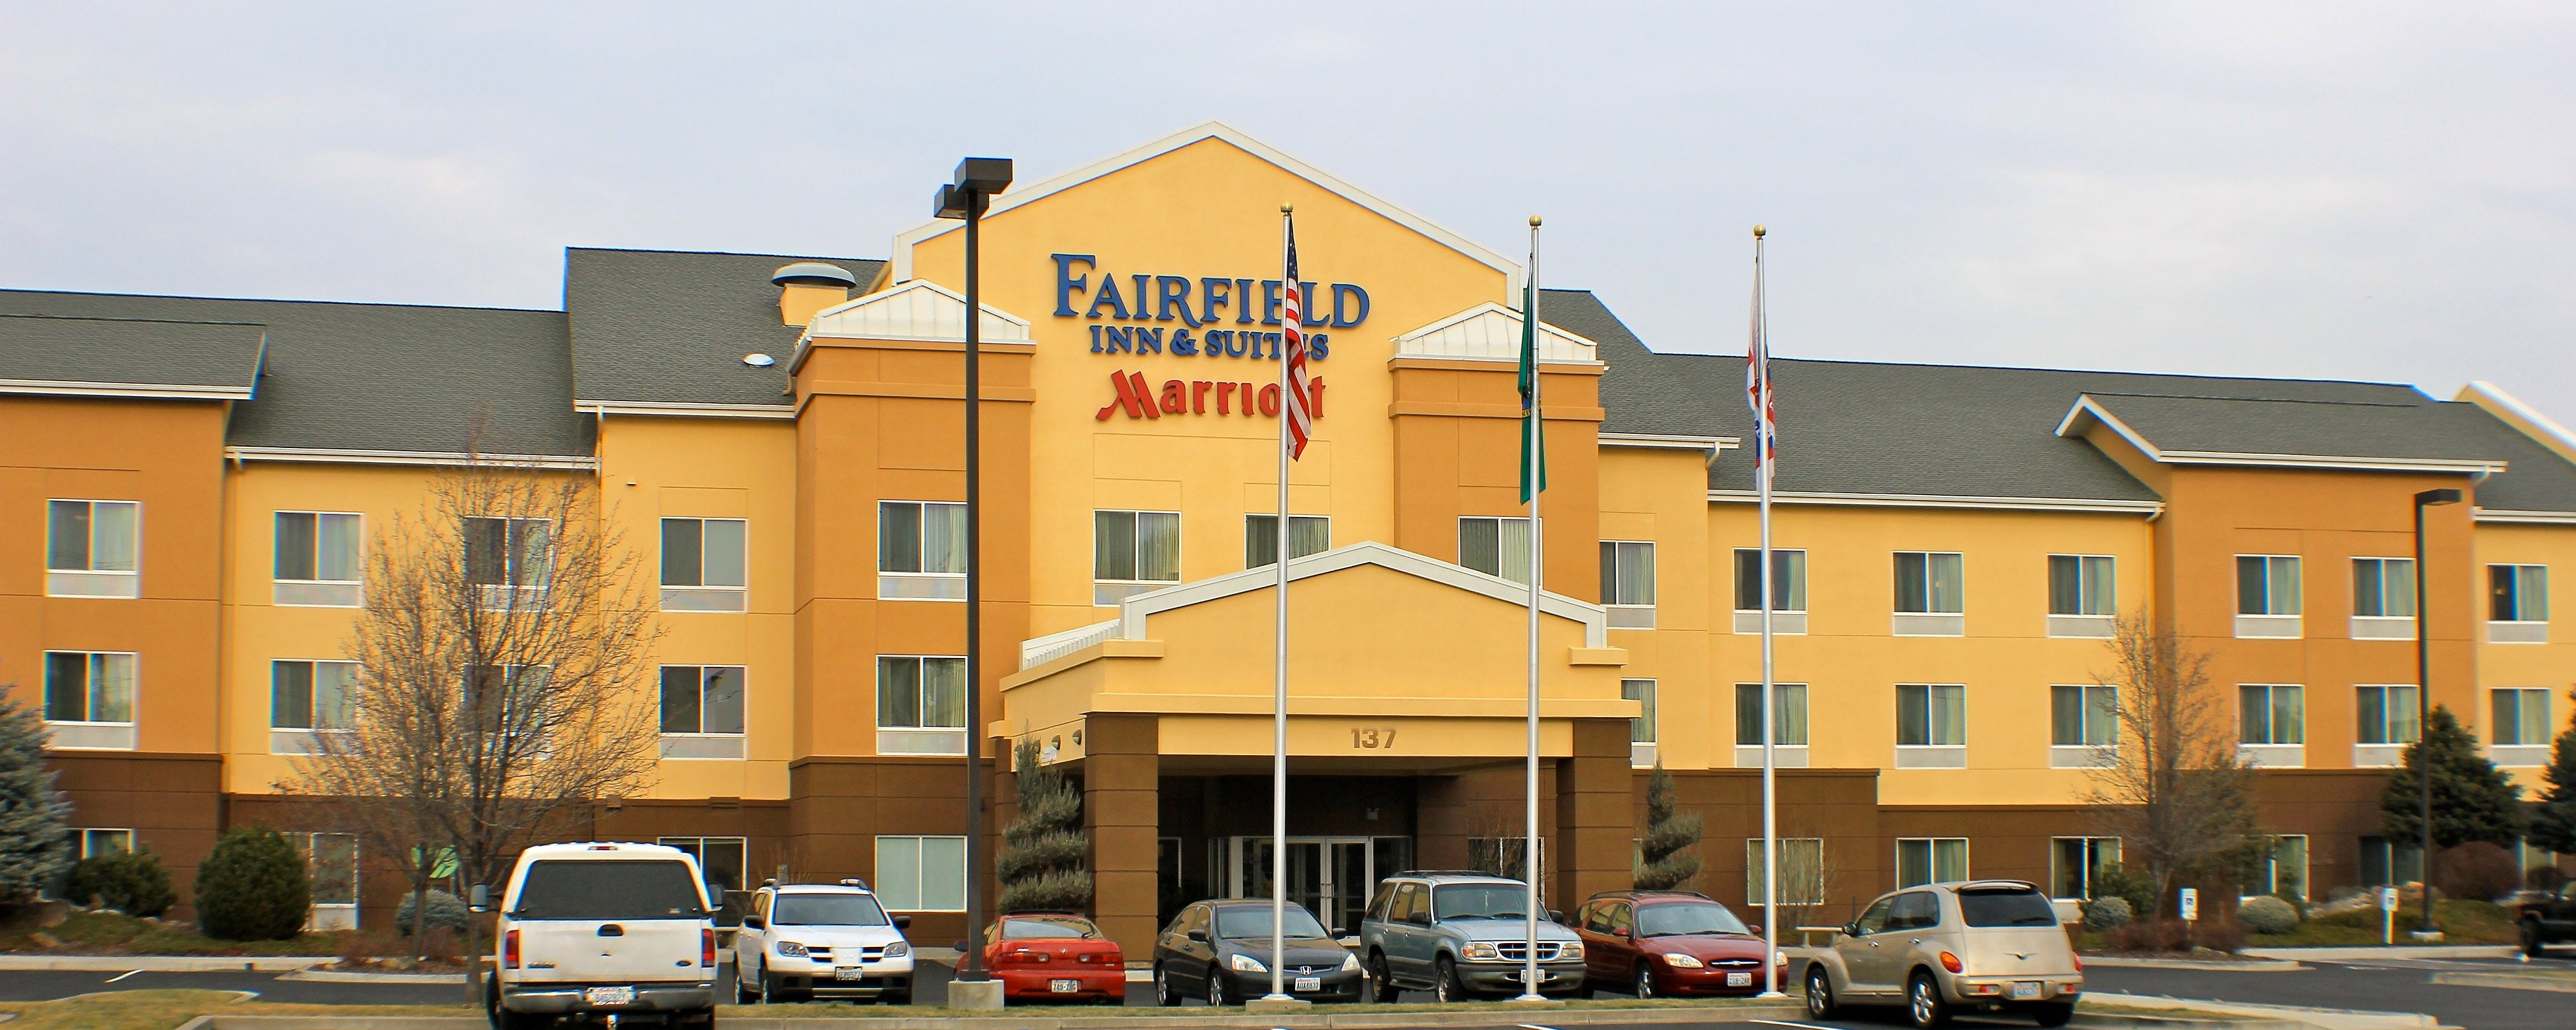 Fairfield Inn and Suites Hotel Exterior